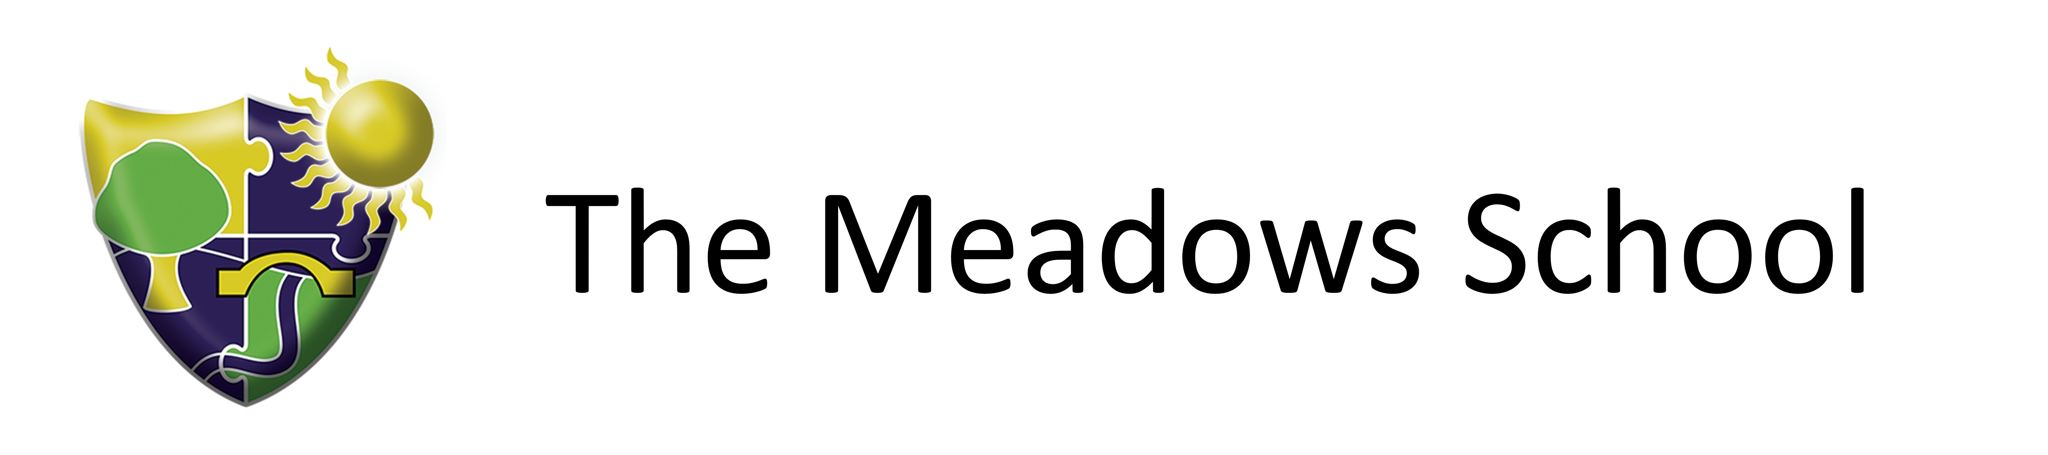 The Meadows School